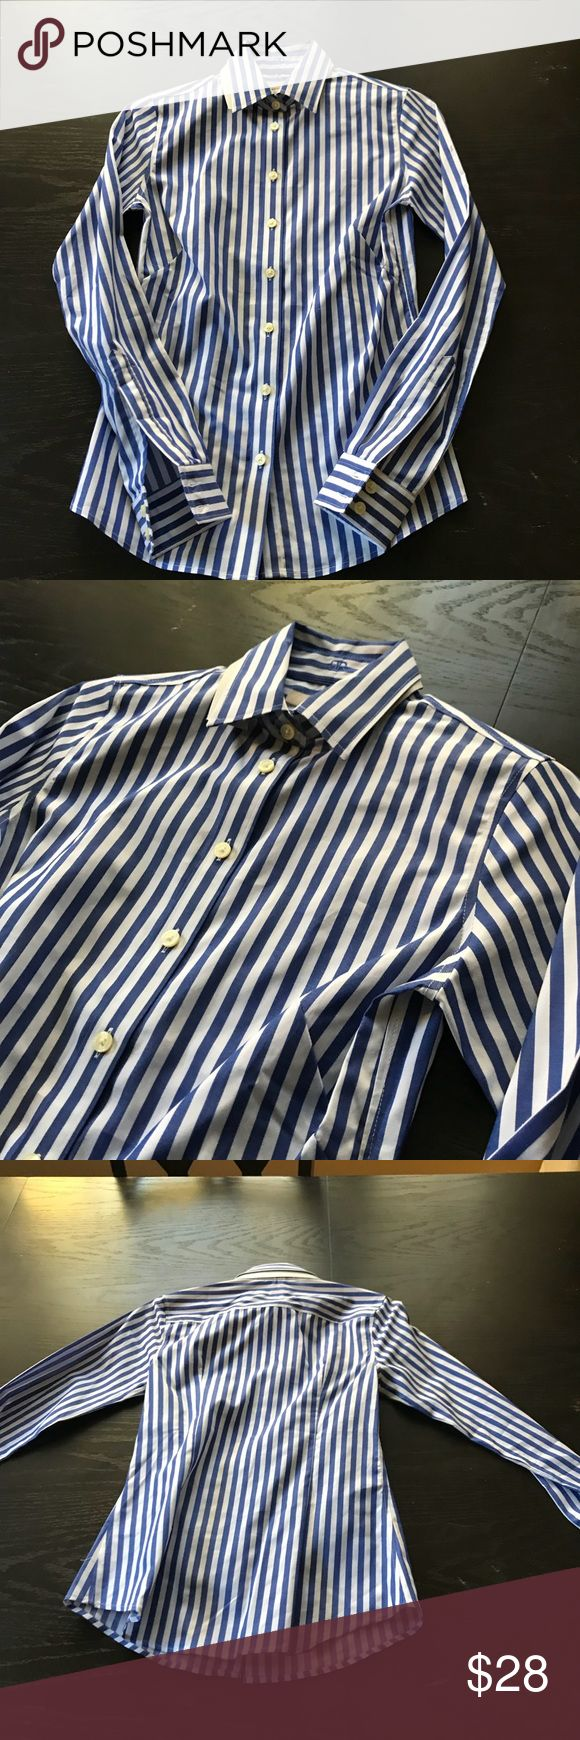 Banana Republic Non Iron Shirt New without tags, bold striped, non-iron button down. Collar shaper is still intact. I have two of these tops and I love the other one. These BR non iron tops are fantastic for work and for layering. Very versatile. Banana Republic Tops Button Down Shirts